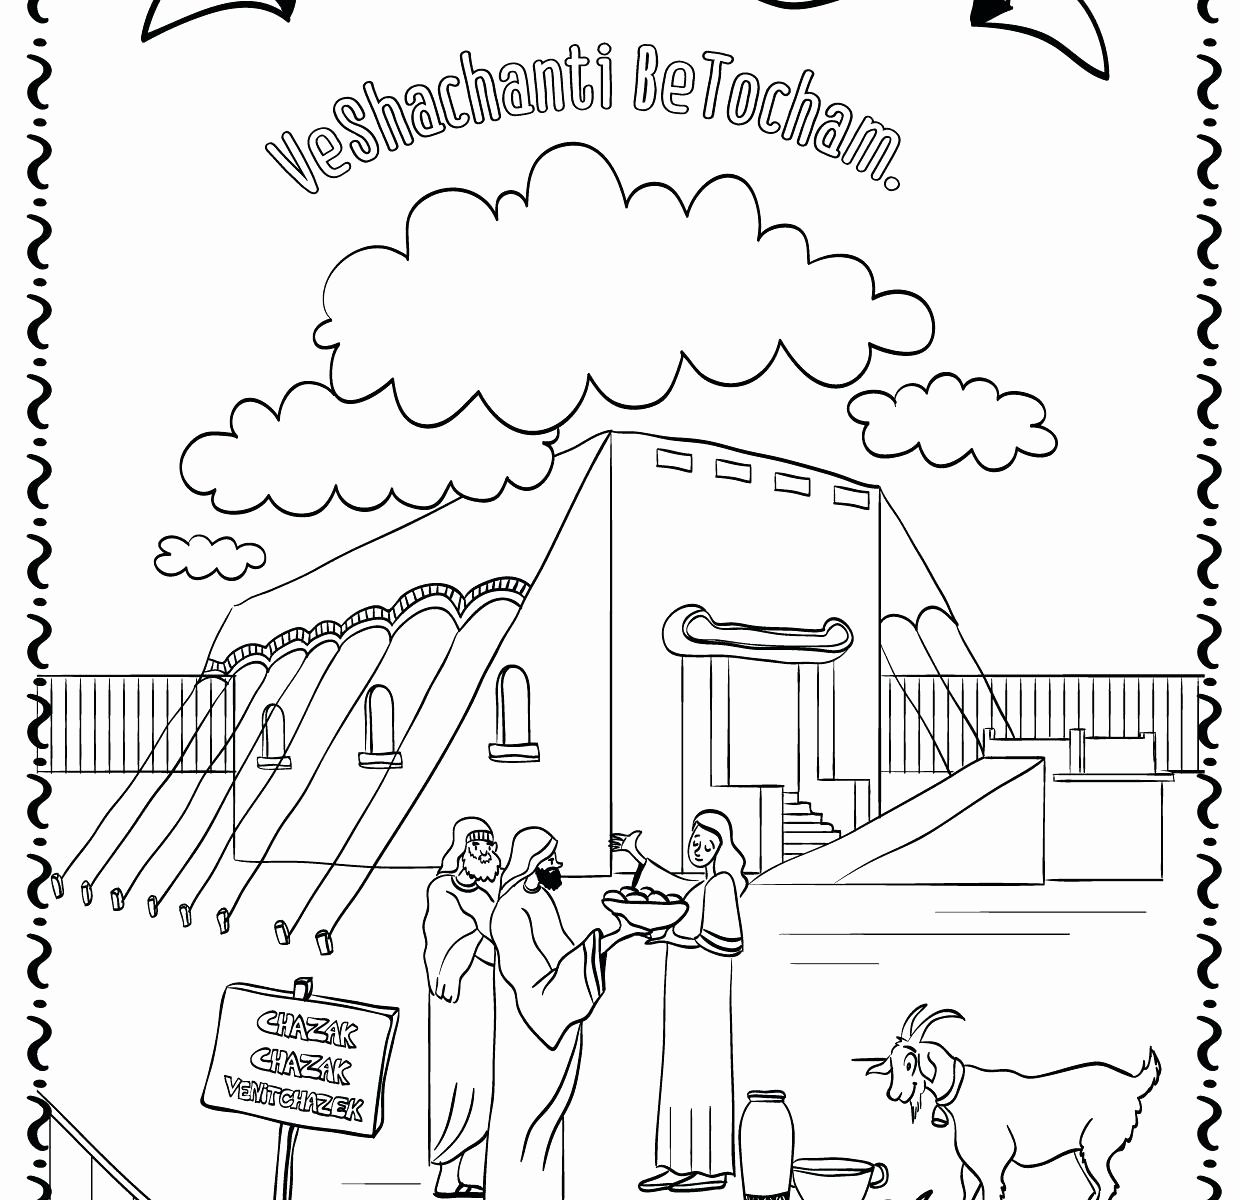 Ark Of The Covenant Coloring Page Coloring Pages The Tabernacle Bible School Crafts